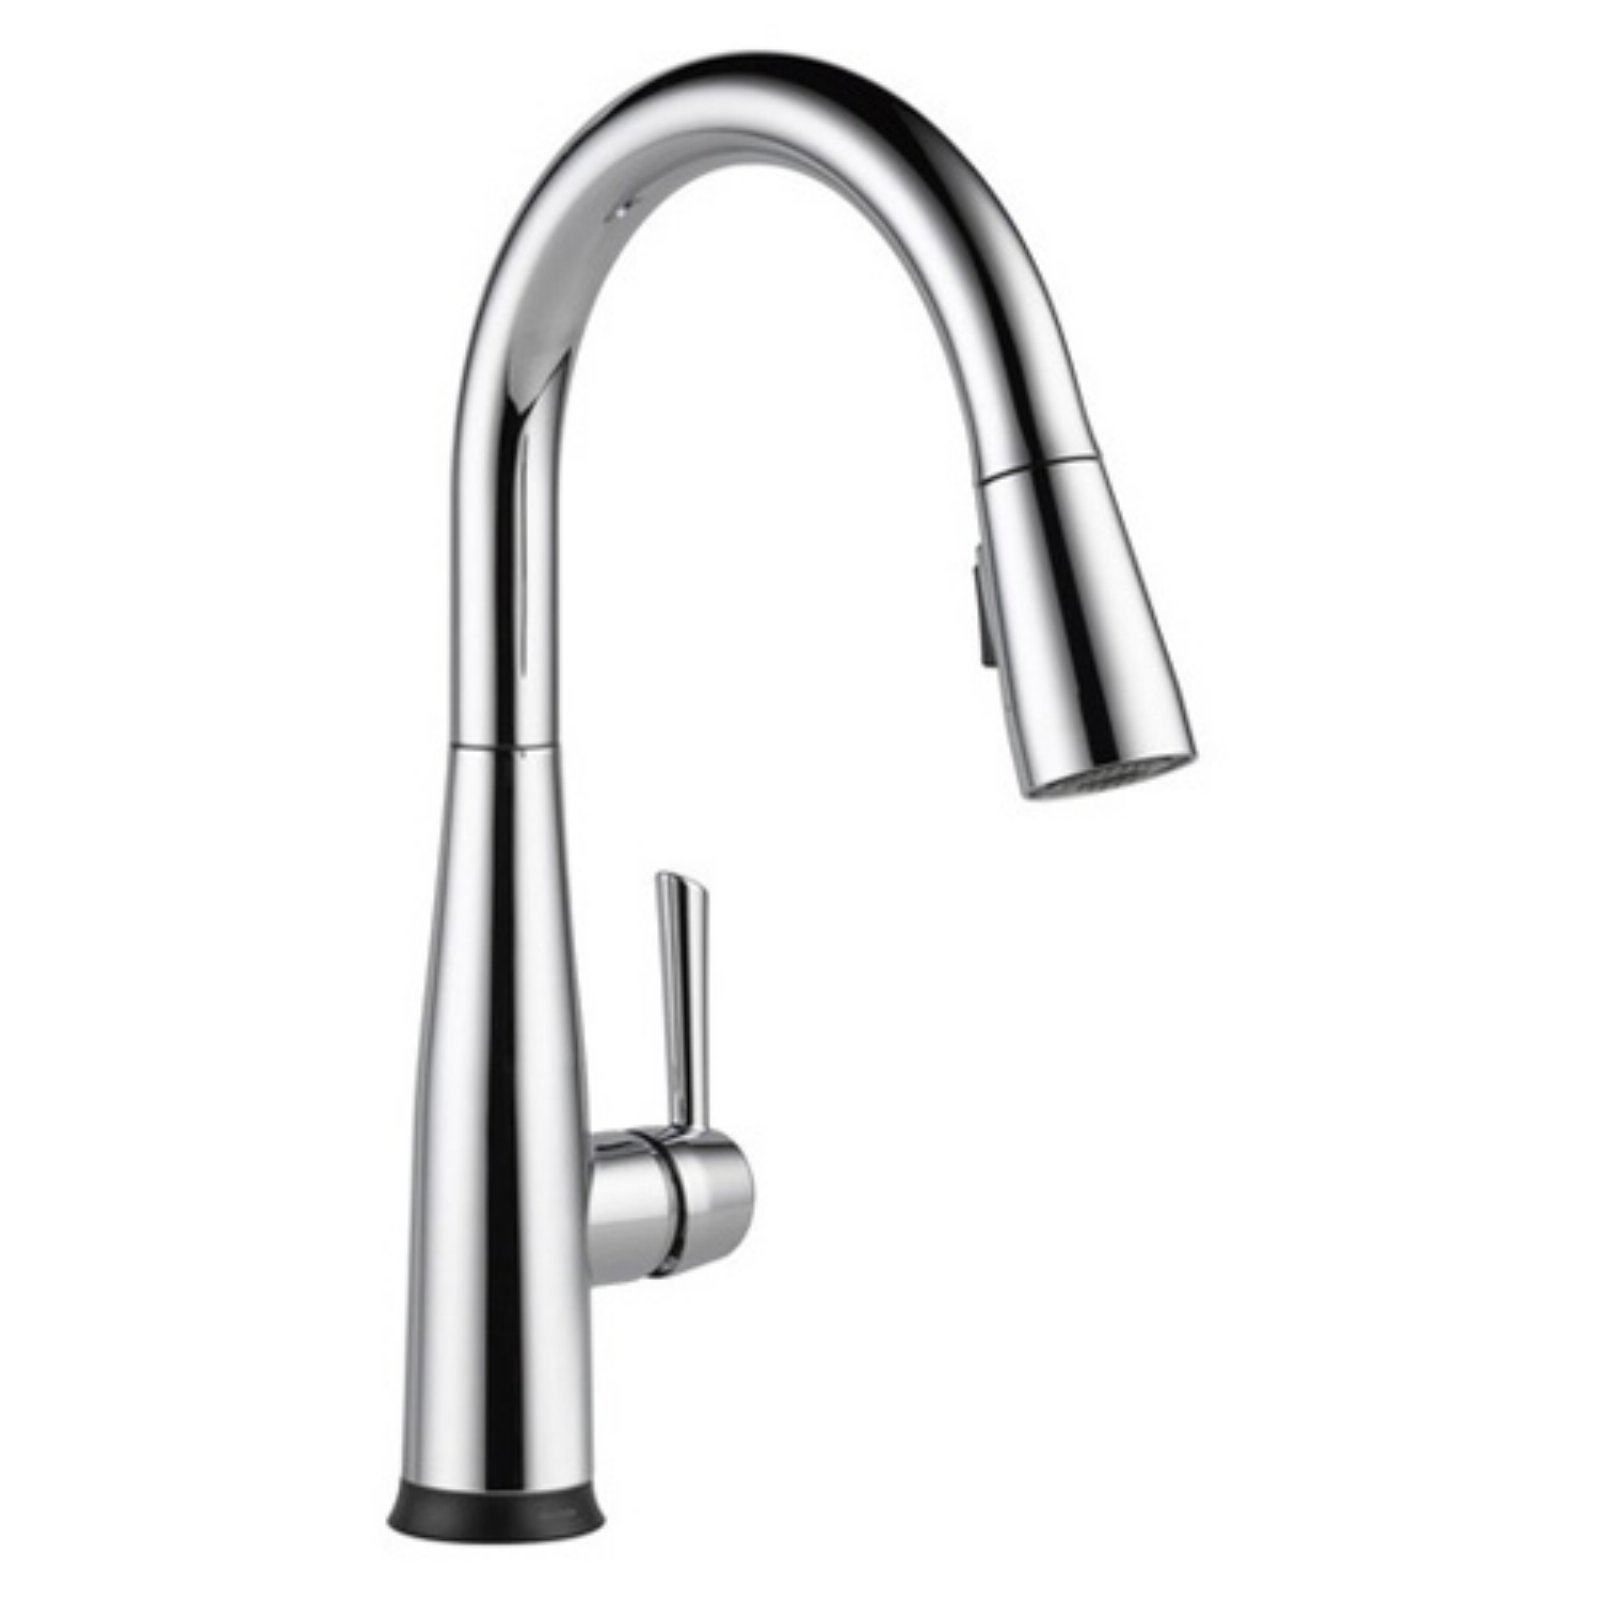 Delta 9113t Essa Touch2o Technology Single Handle Pull Down Sprayer Kitchen Faucet With Magnatite Docking Delta Faucets Faucet Kitchen Faucet